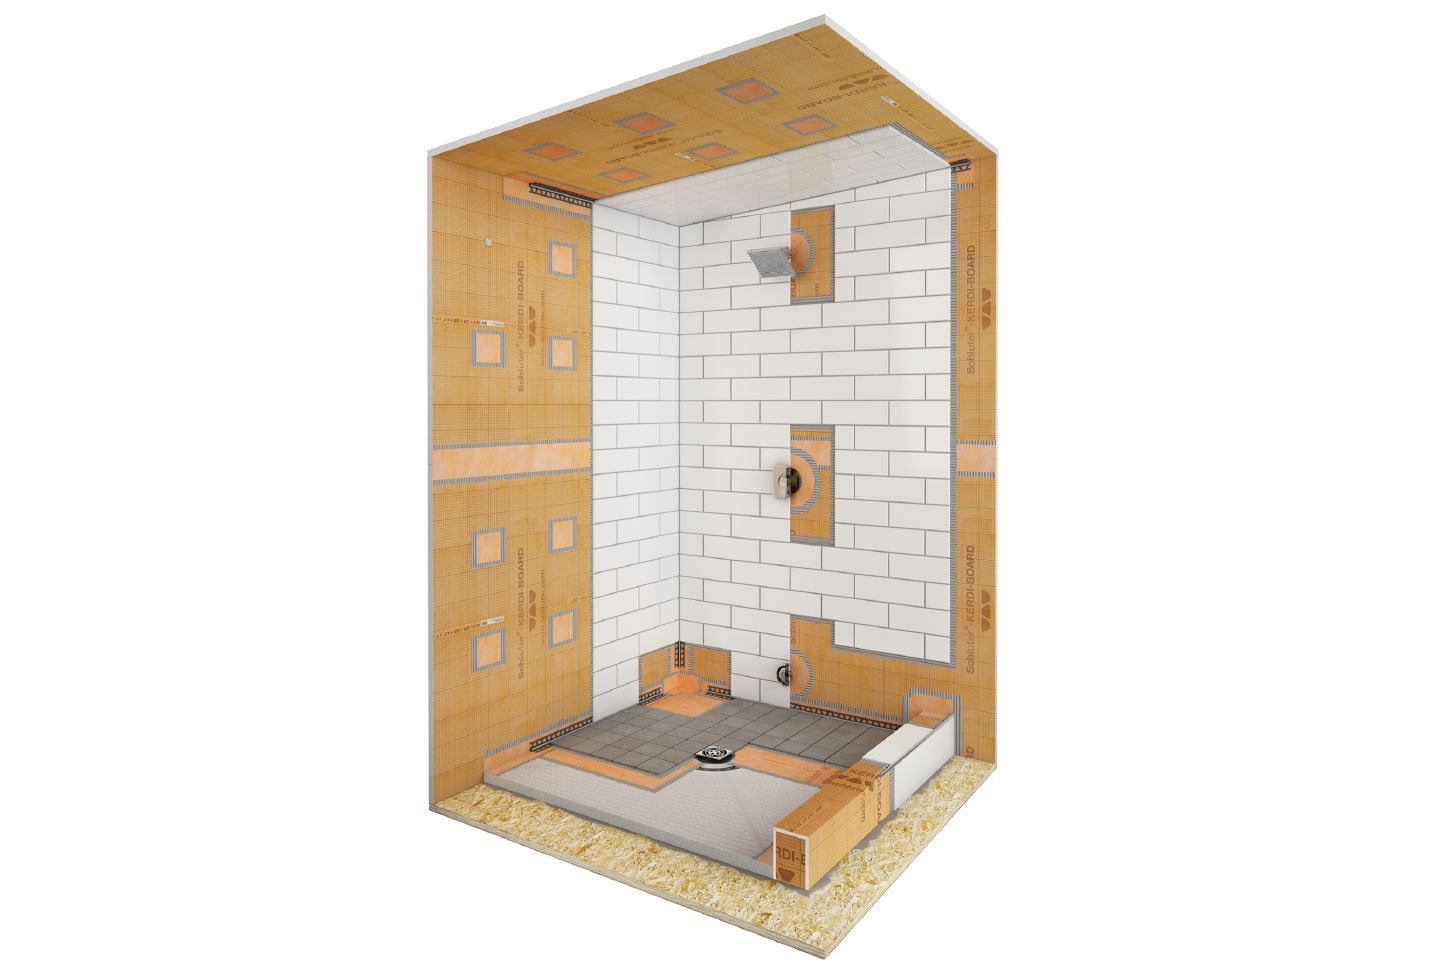 Exceptional Here Are Two Waterproofing Options That Are Ideal For Your Residential  Steam Shower: KERDI BOARD And KERDI U2013 Both Provide Waterproofing As Well As  Being ...